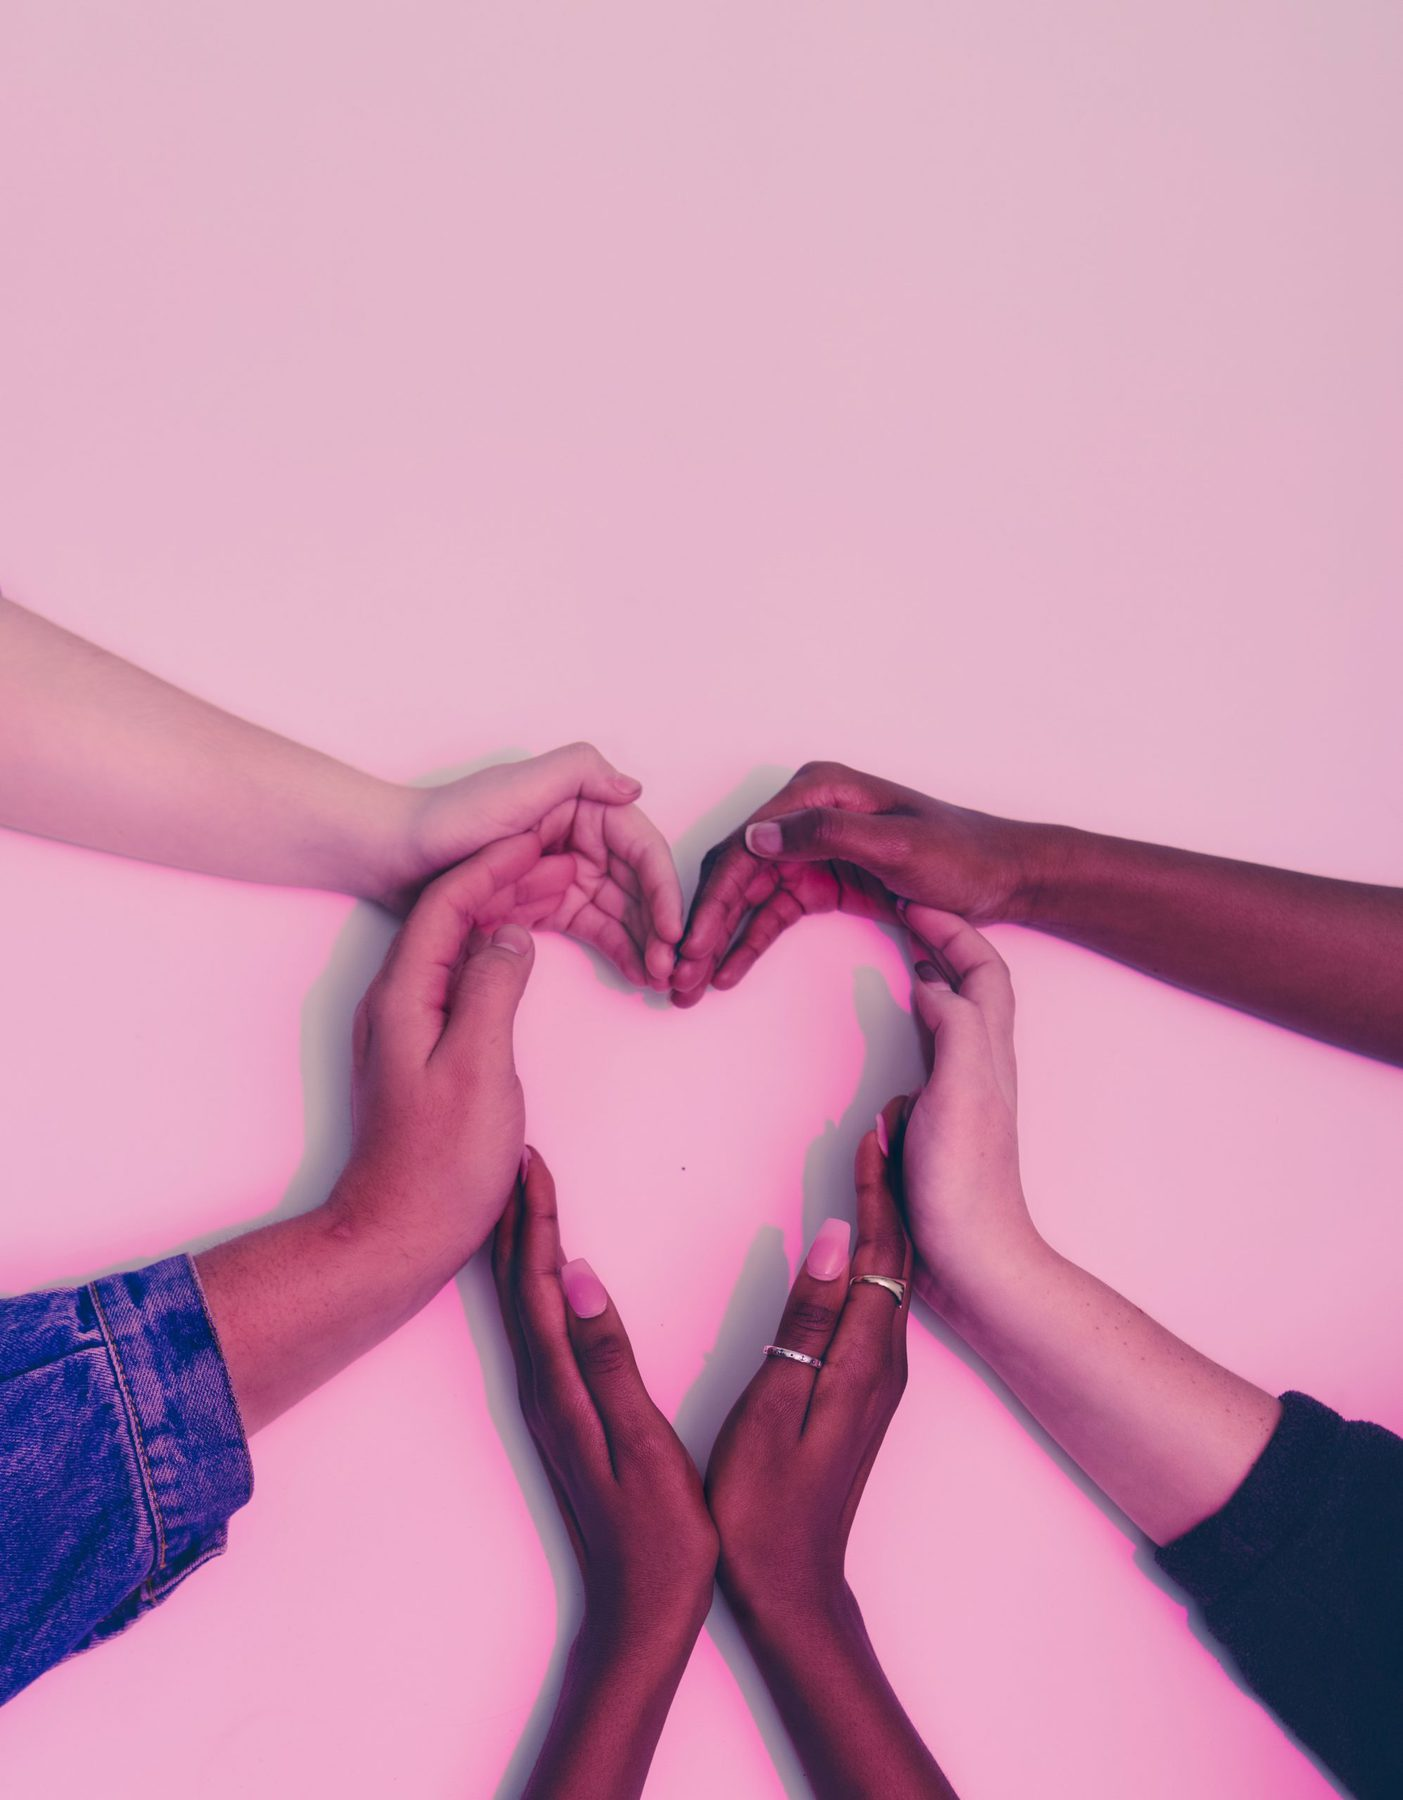 multiculture, hands forming heart - pexels-atc-comm-photo-305530